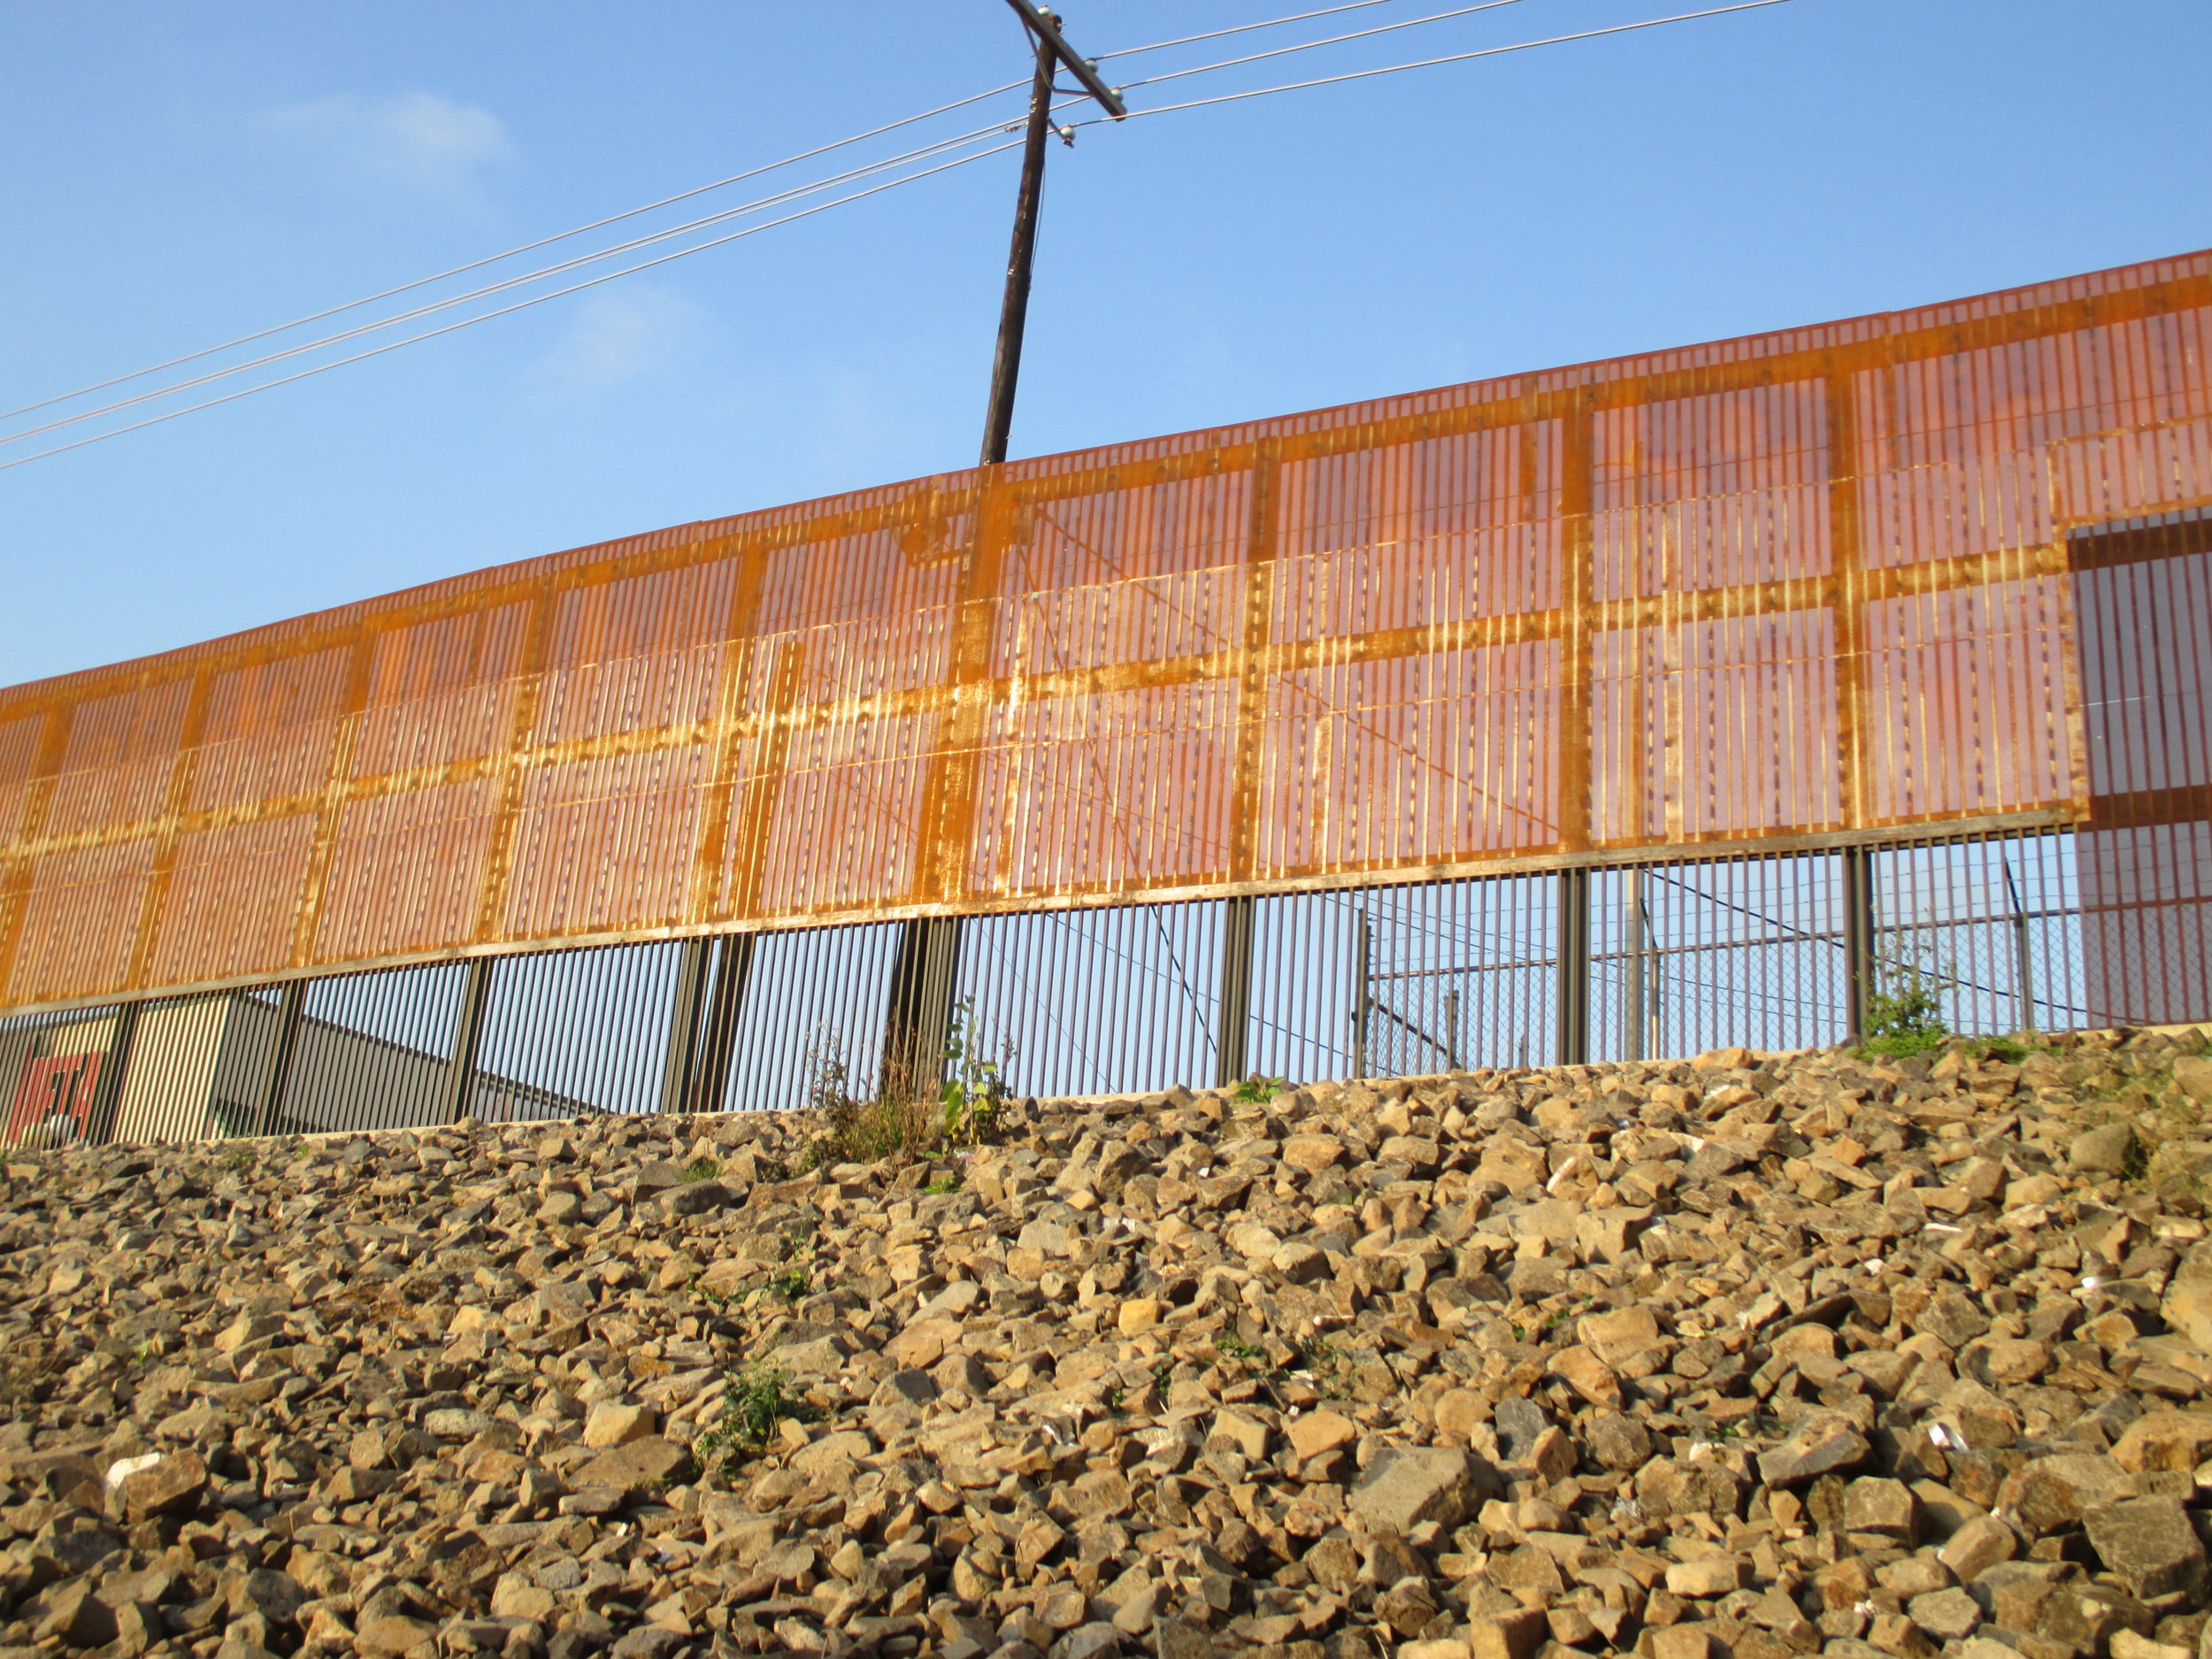 5_Orange metal fence_add to design.jpg